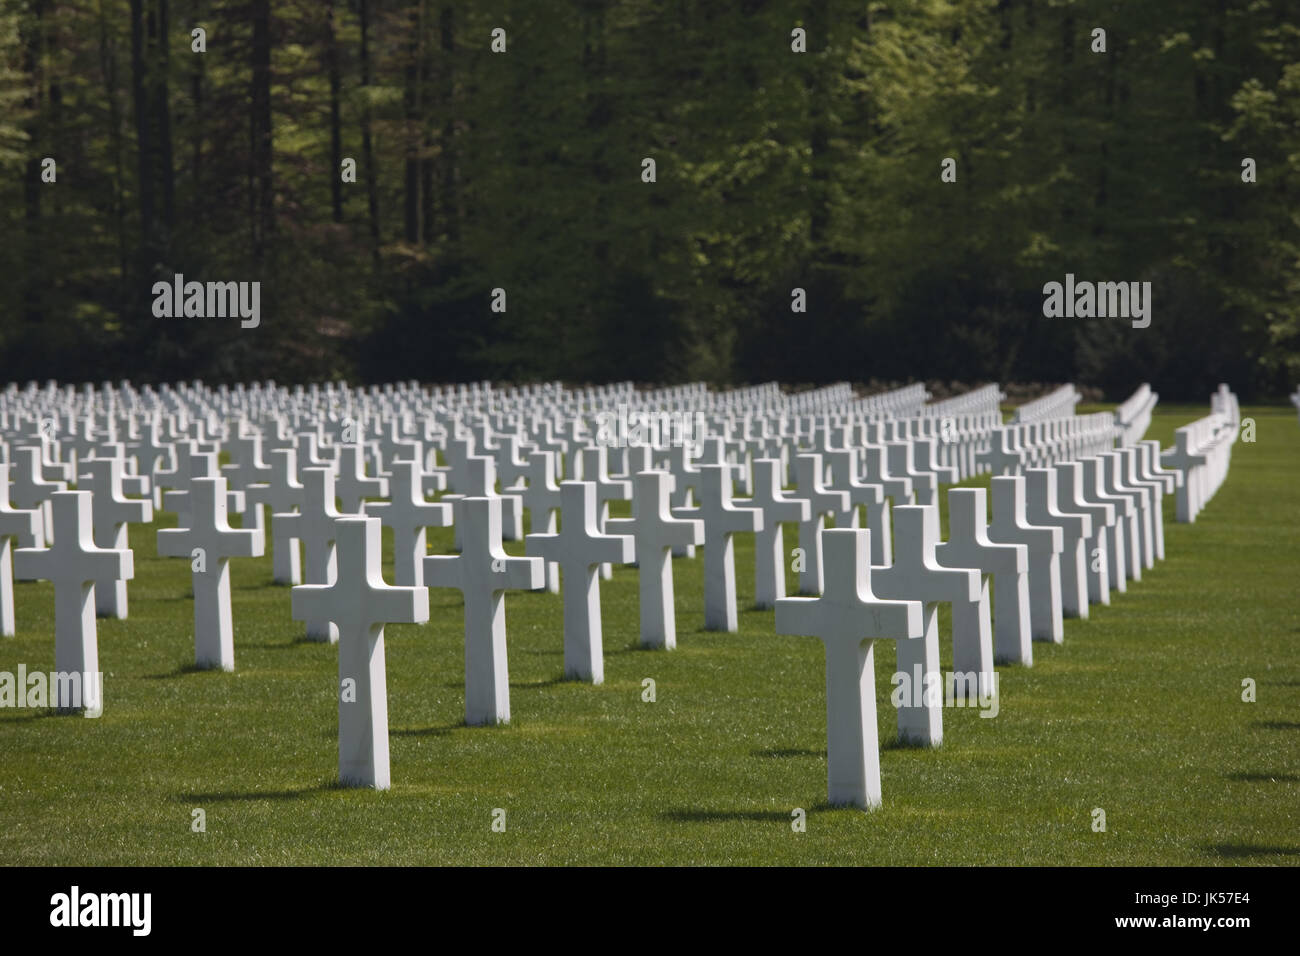 Luxembourg, Hamm, US Military Cemetery containing the graves of more than 5000 US war dead from WW2, - Stock Image